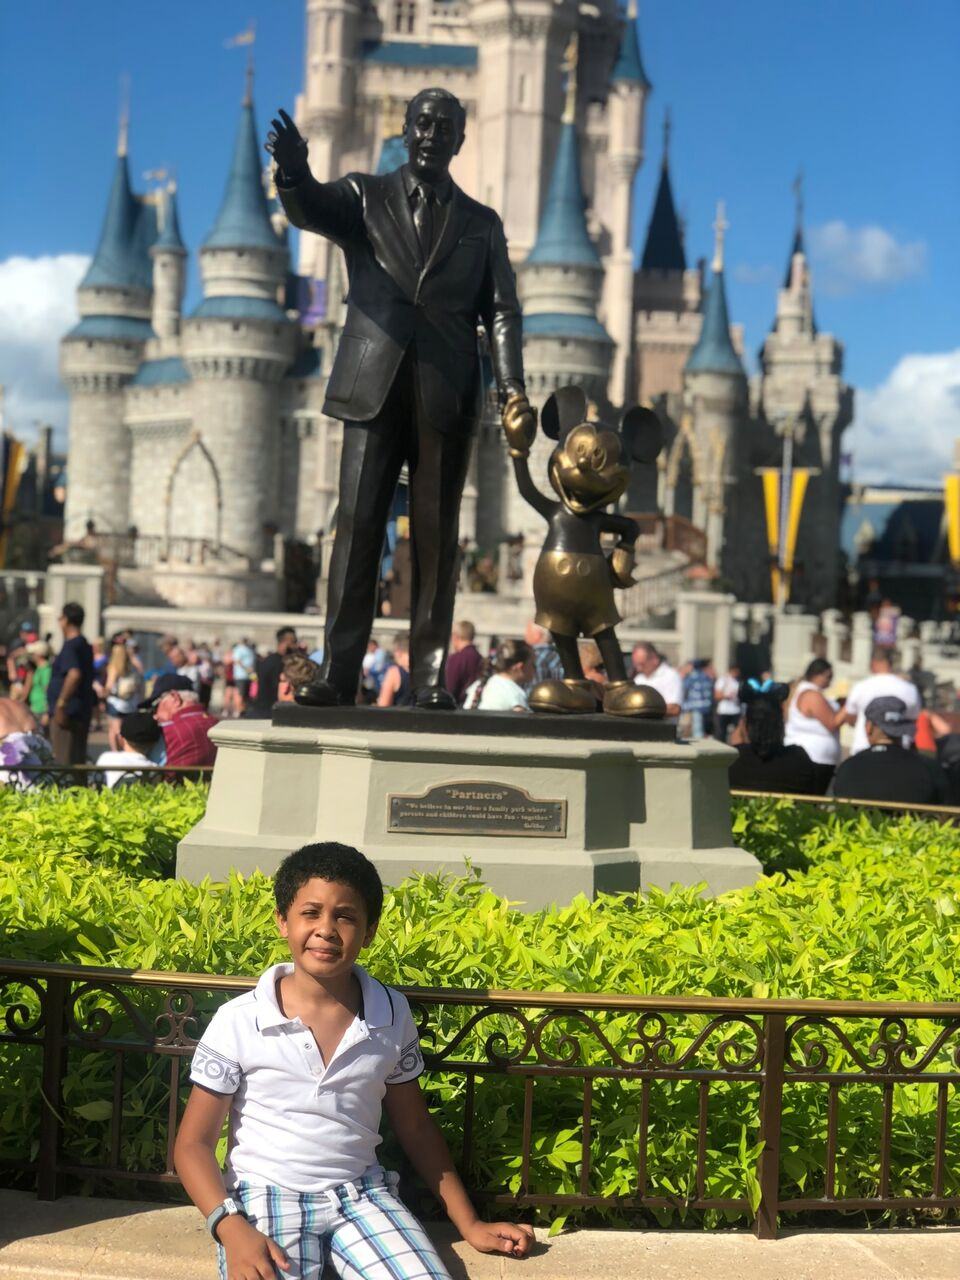 a magical trip to disney world Your first trip to disney world can be truly magical but planning is a must here are 10 tips for your first trip to disney world.